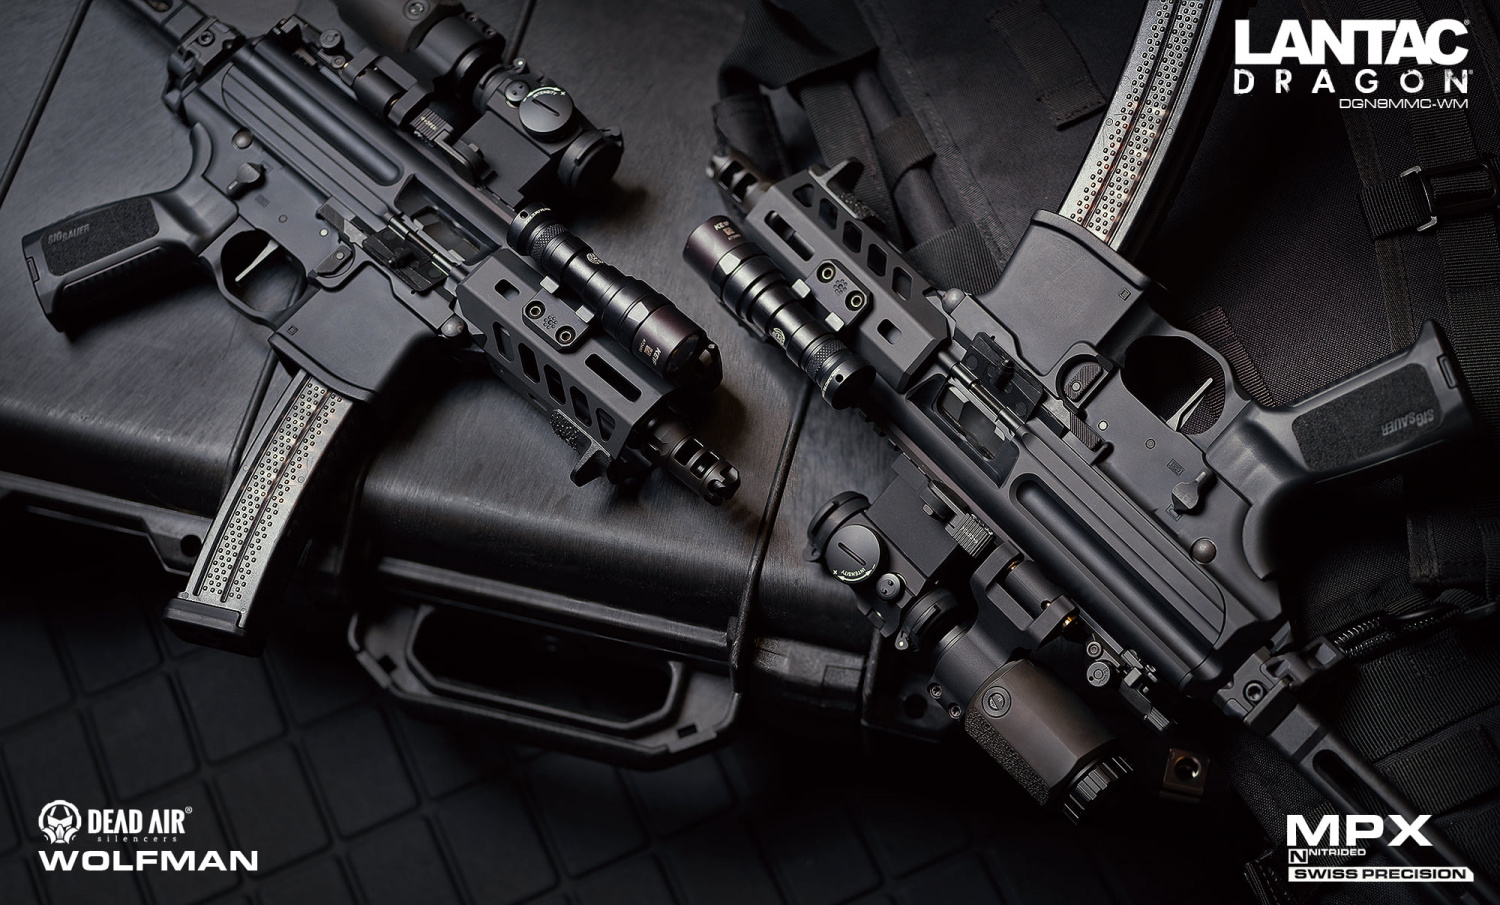 New Lantac Dragon Muzzle Brake with Dead Air KEYMO Mounting System